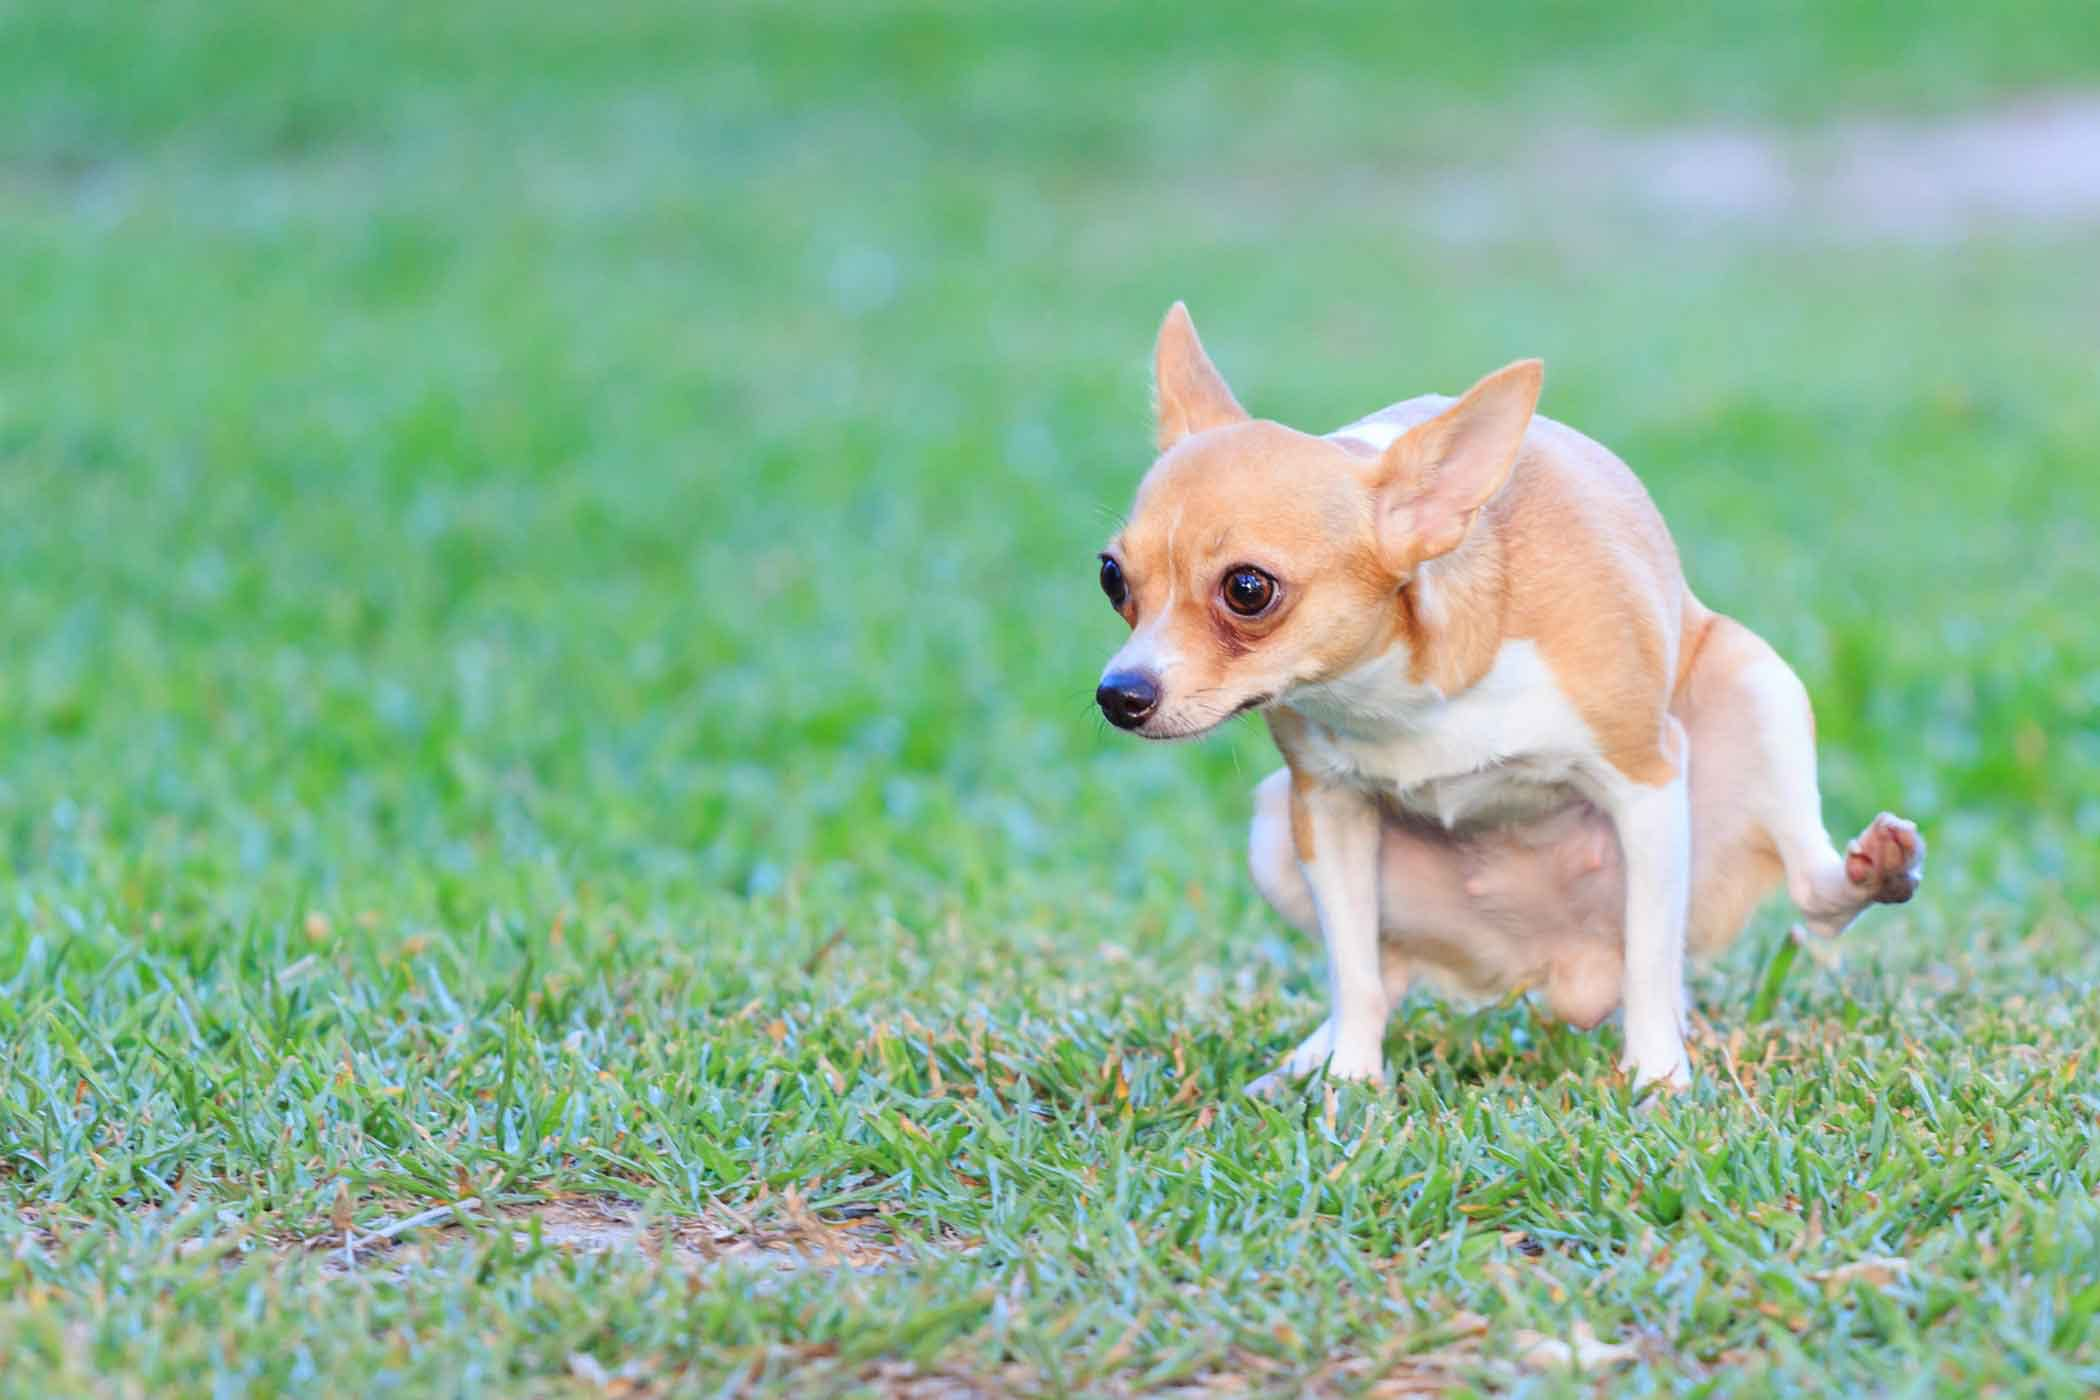 How To Train Your Small Dog To Pee Outside